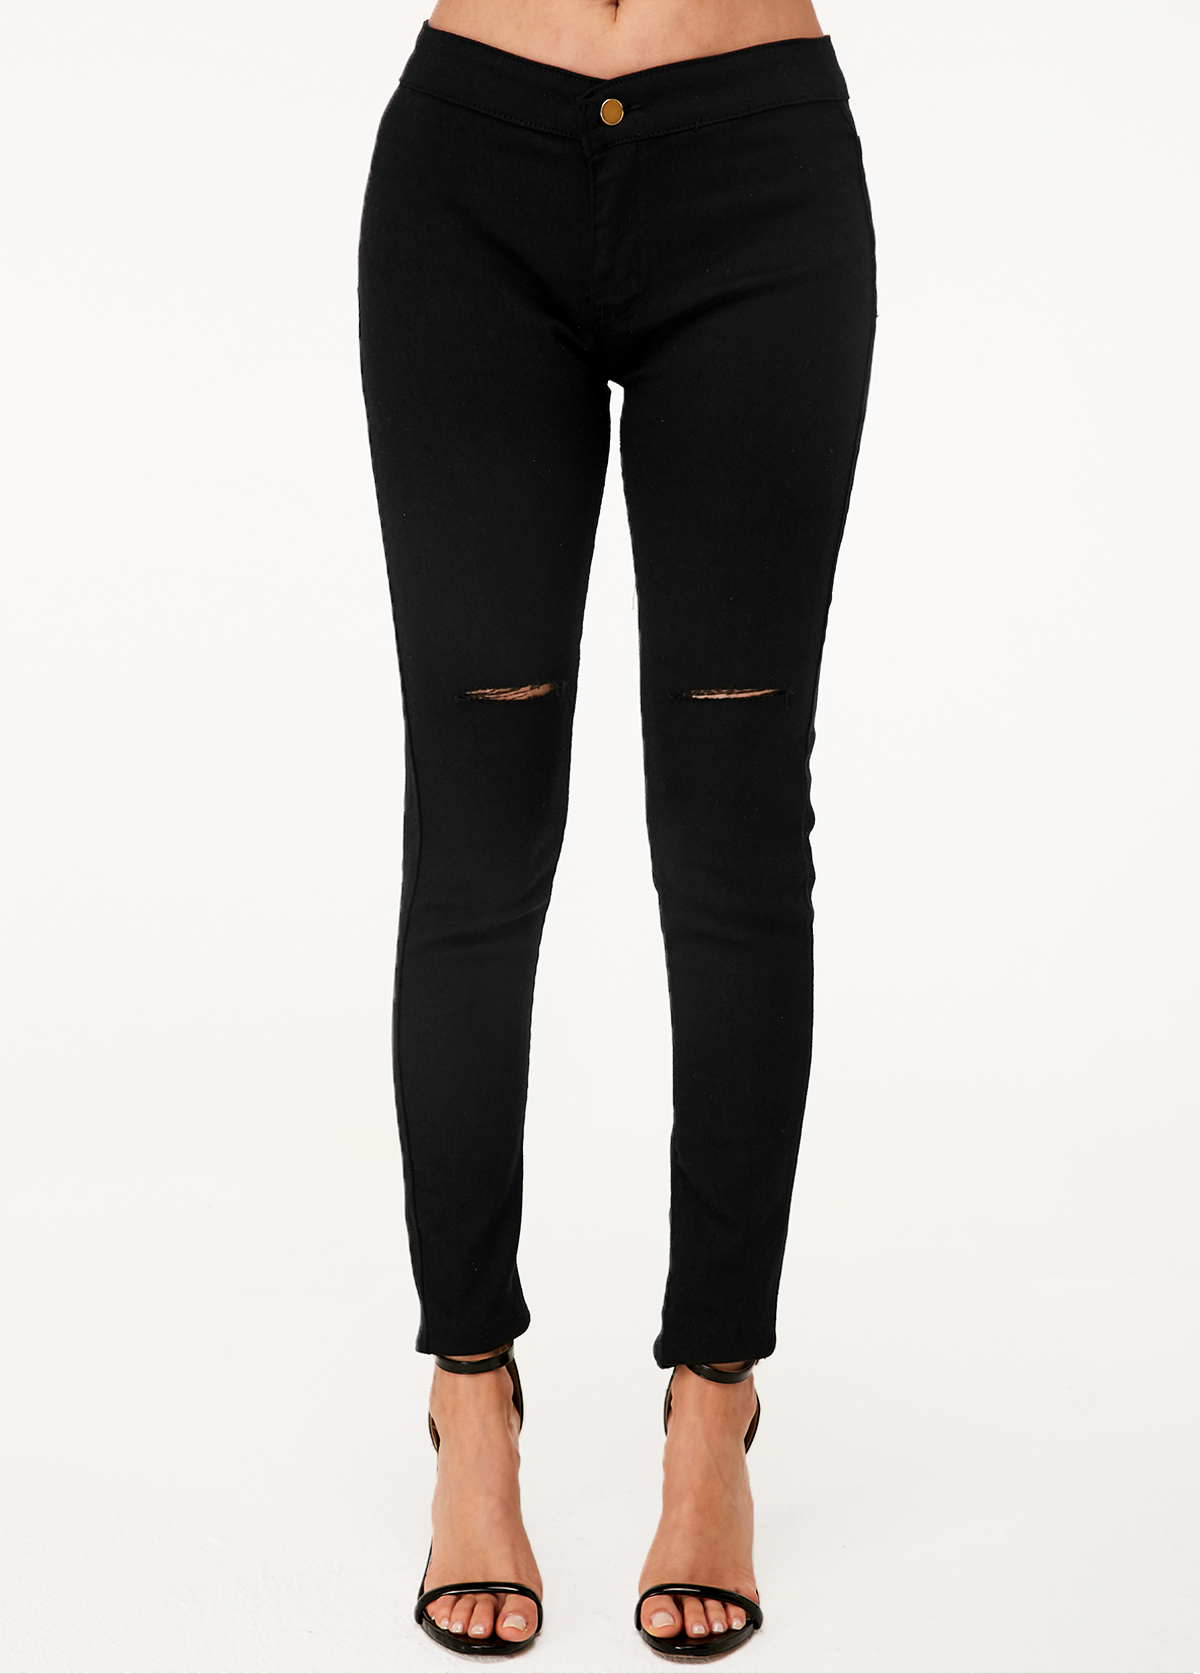 ROTITA Black Shredded High Waist Skinny Jeans